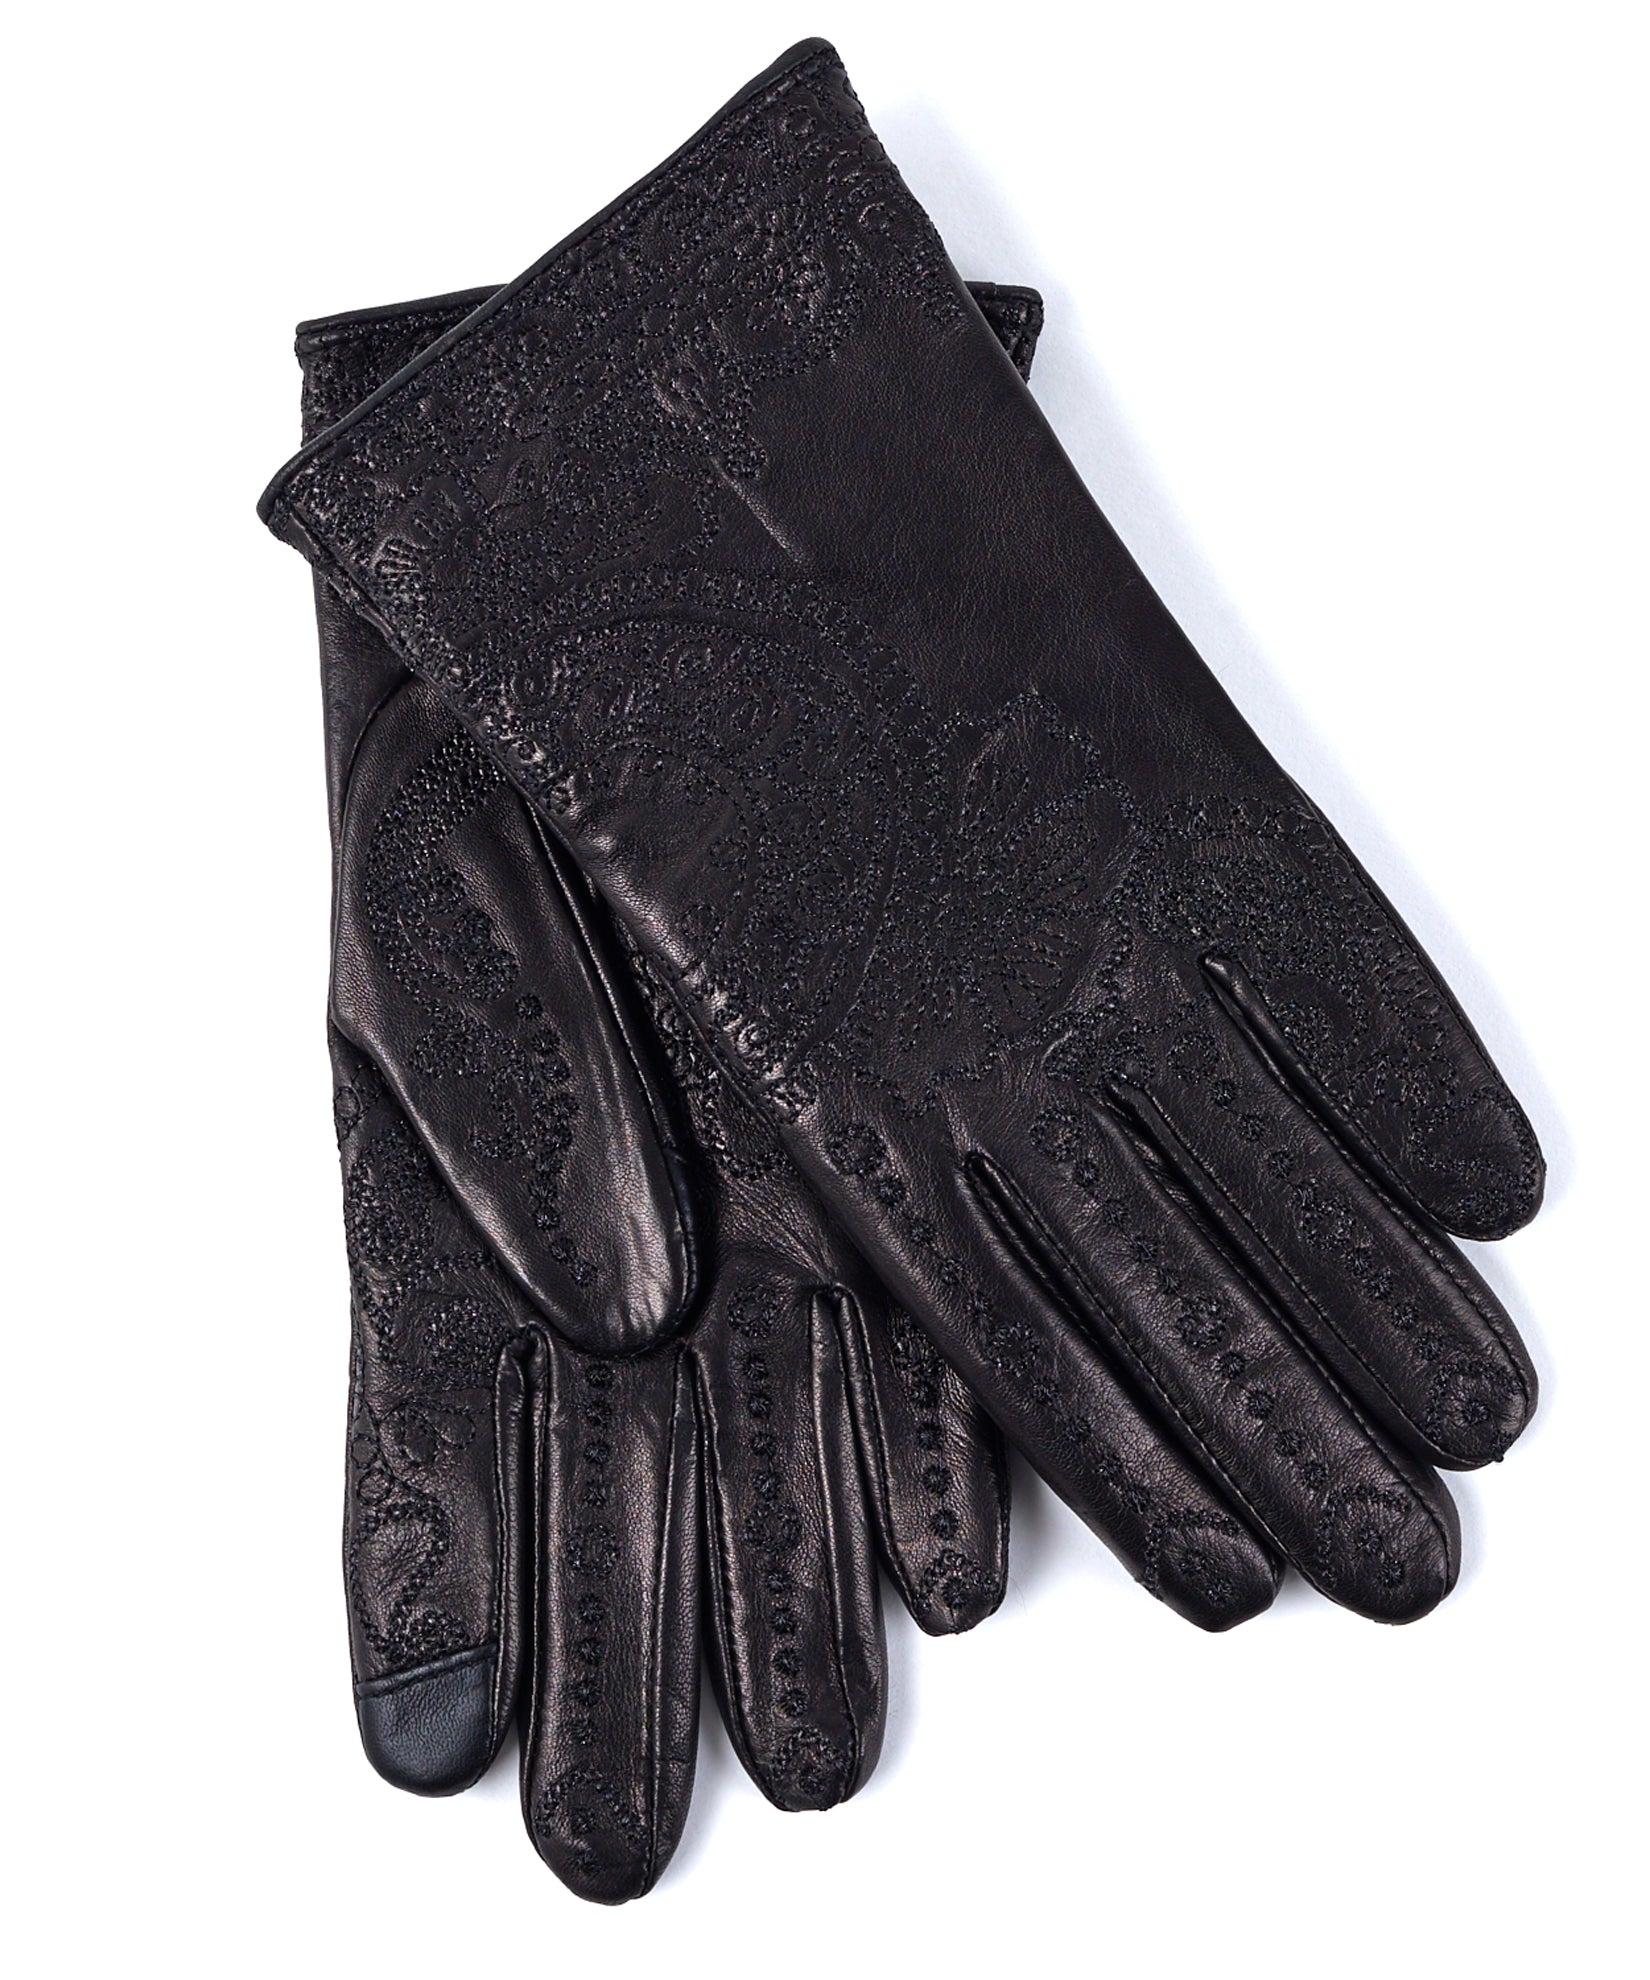 Black/Black - Lucky Glove